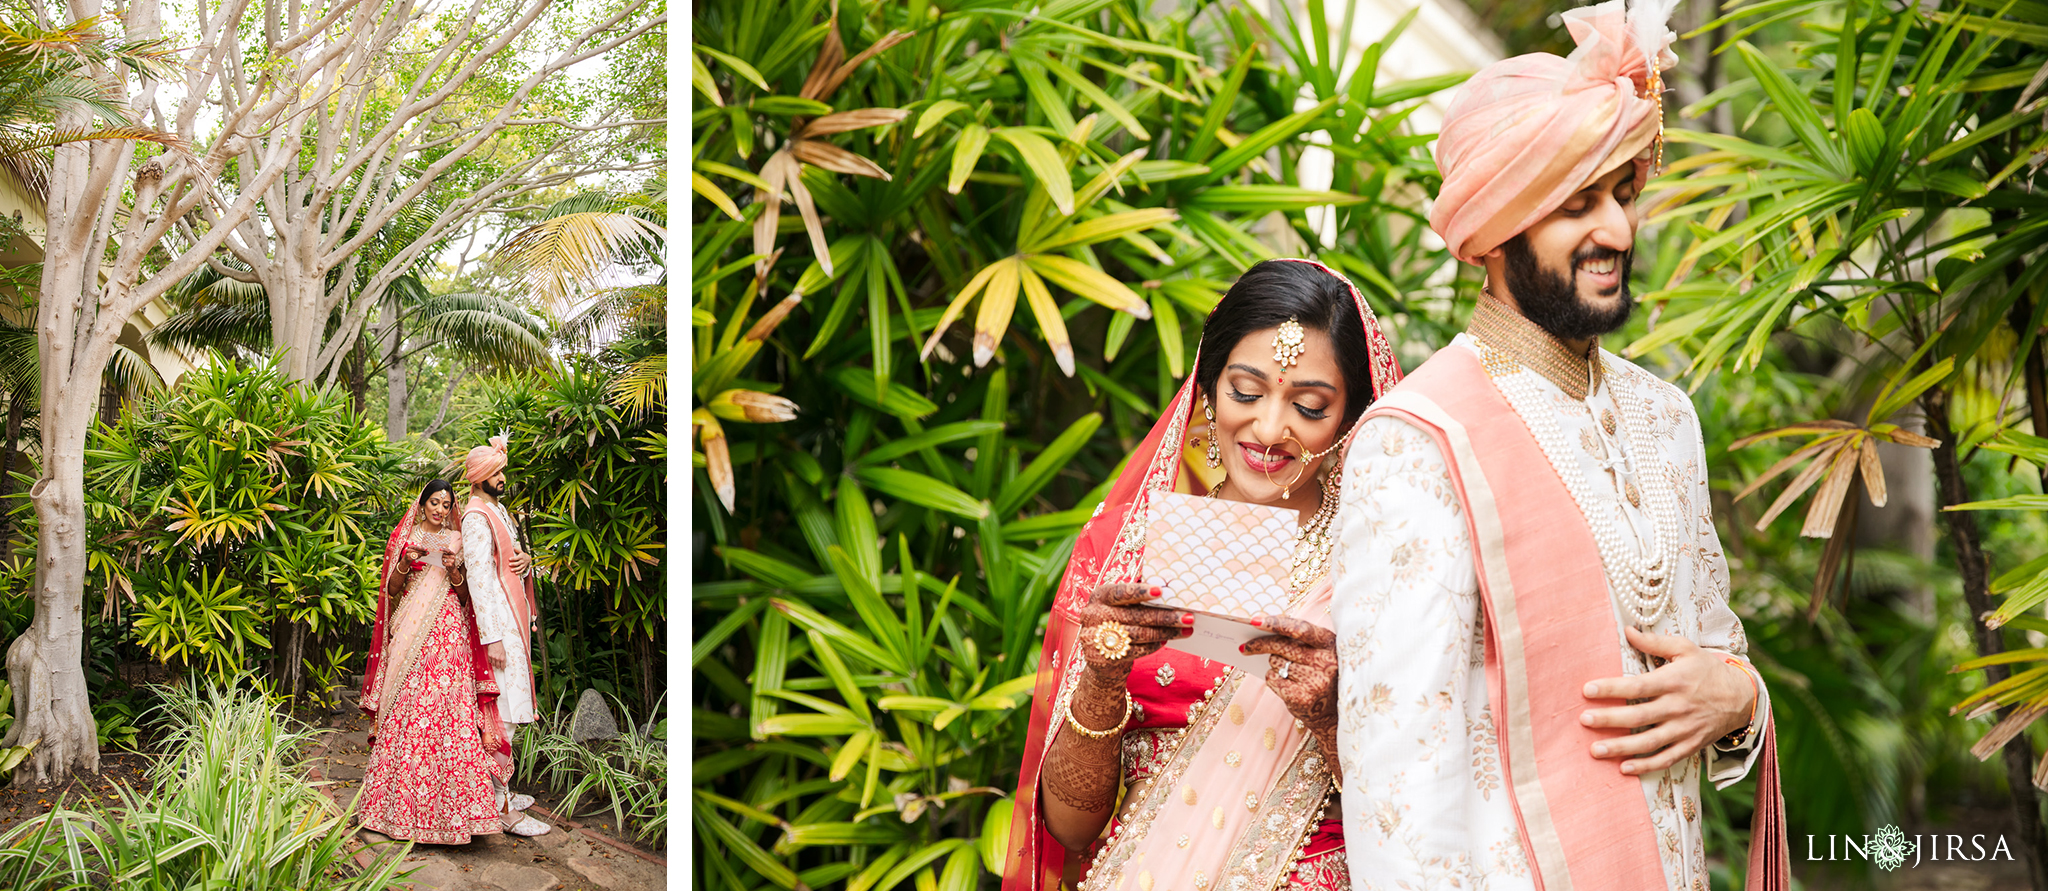 13 Ritz Carlton Laguna Niguel Indian Wedding Photography